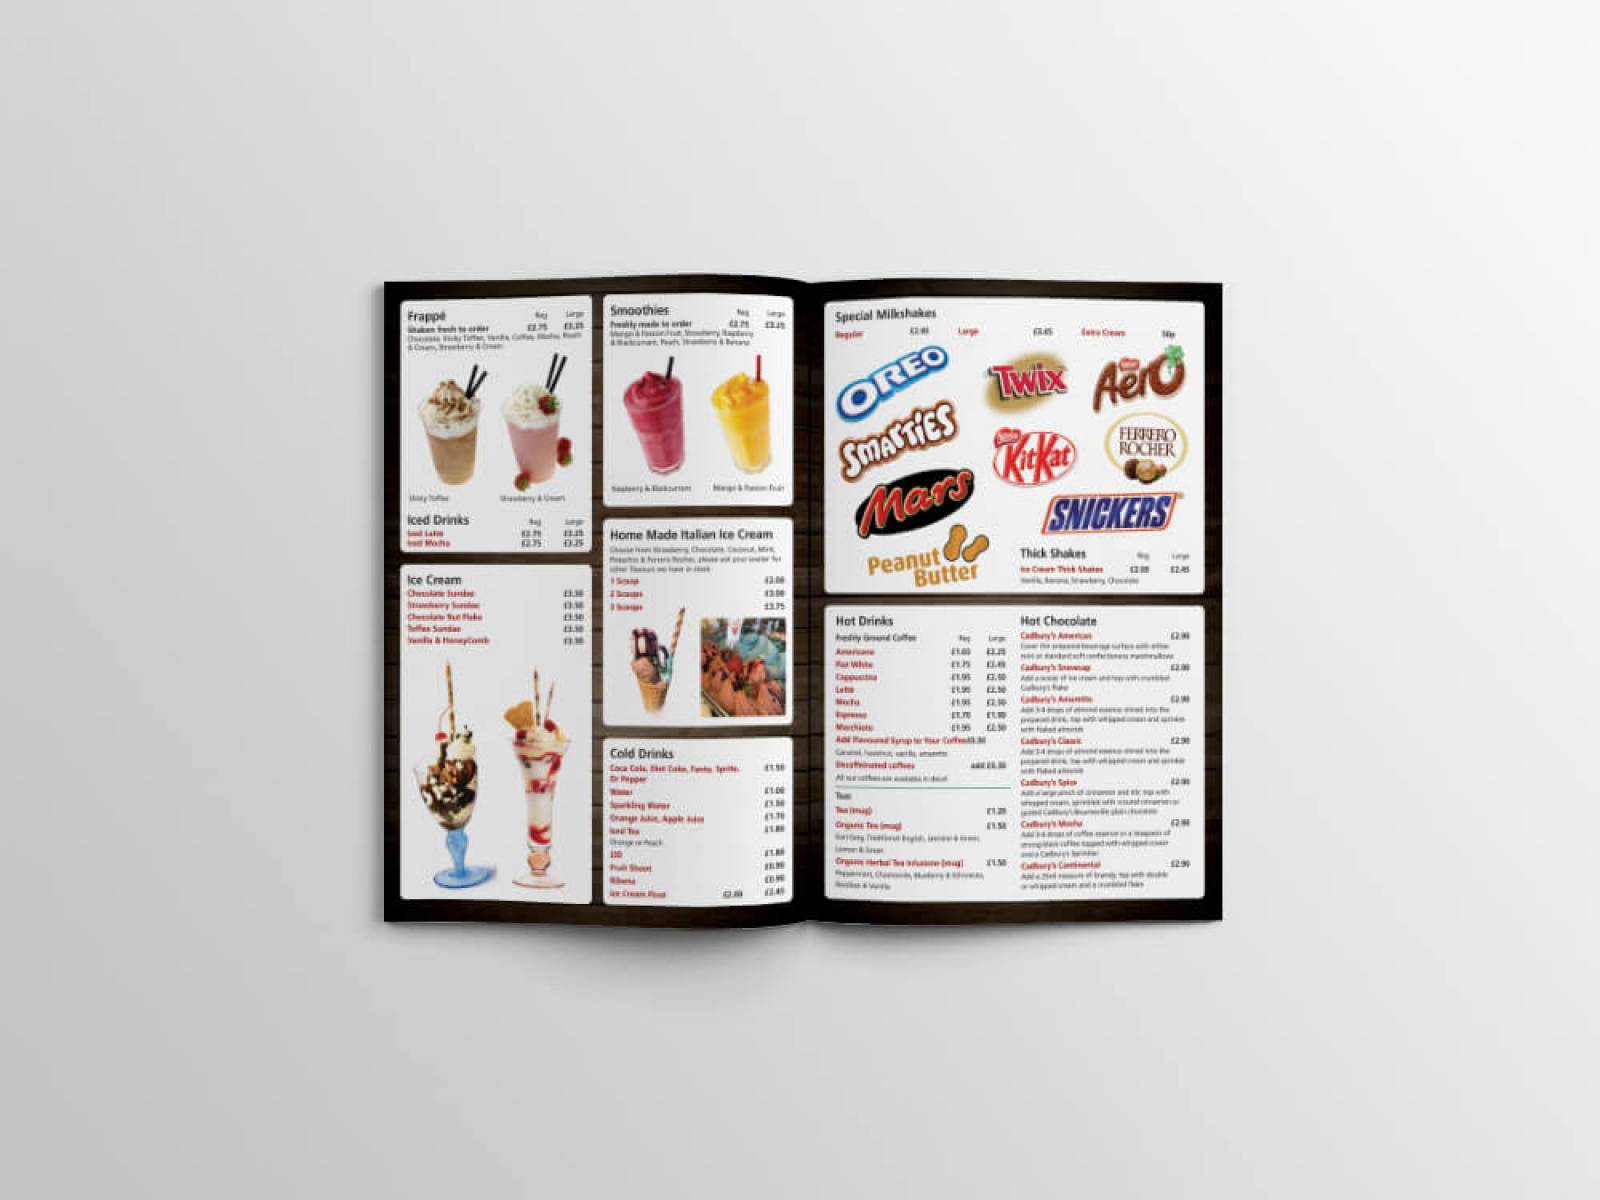 Direct-pizza-flyer-5-design-agency-graphic-design-canterbury.jpg